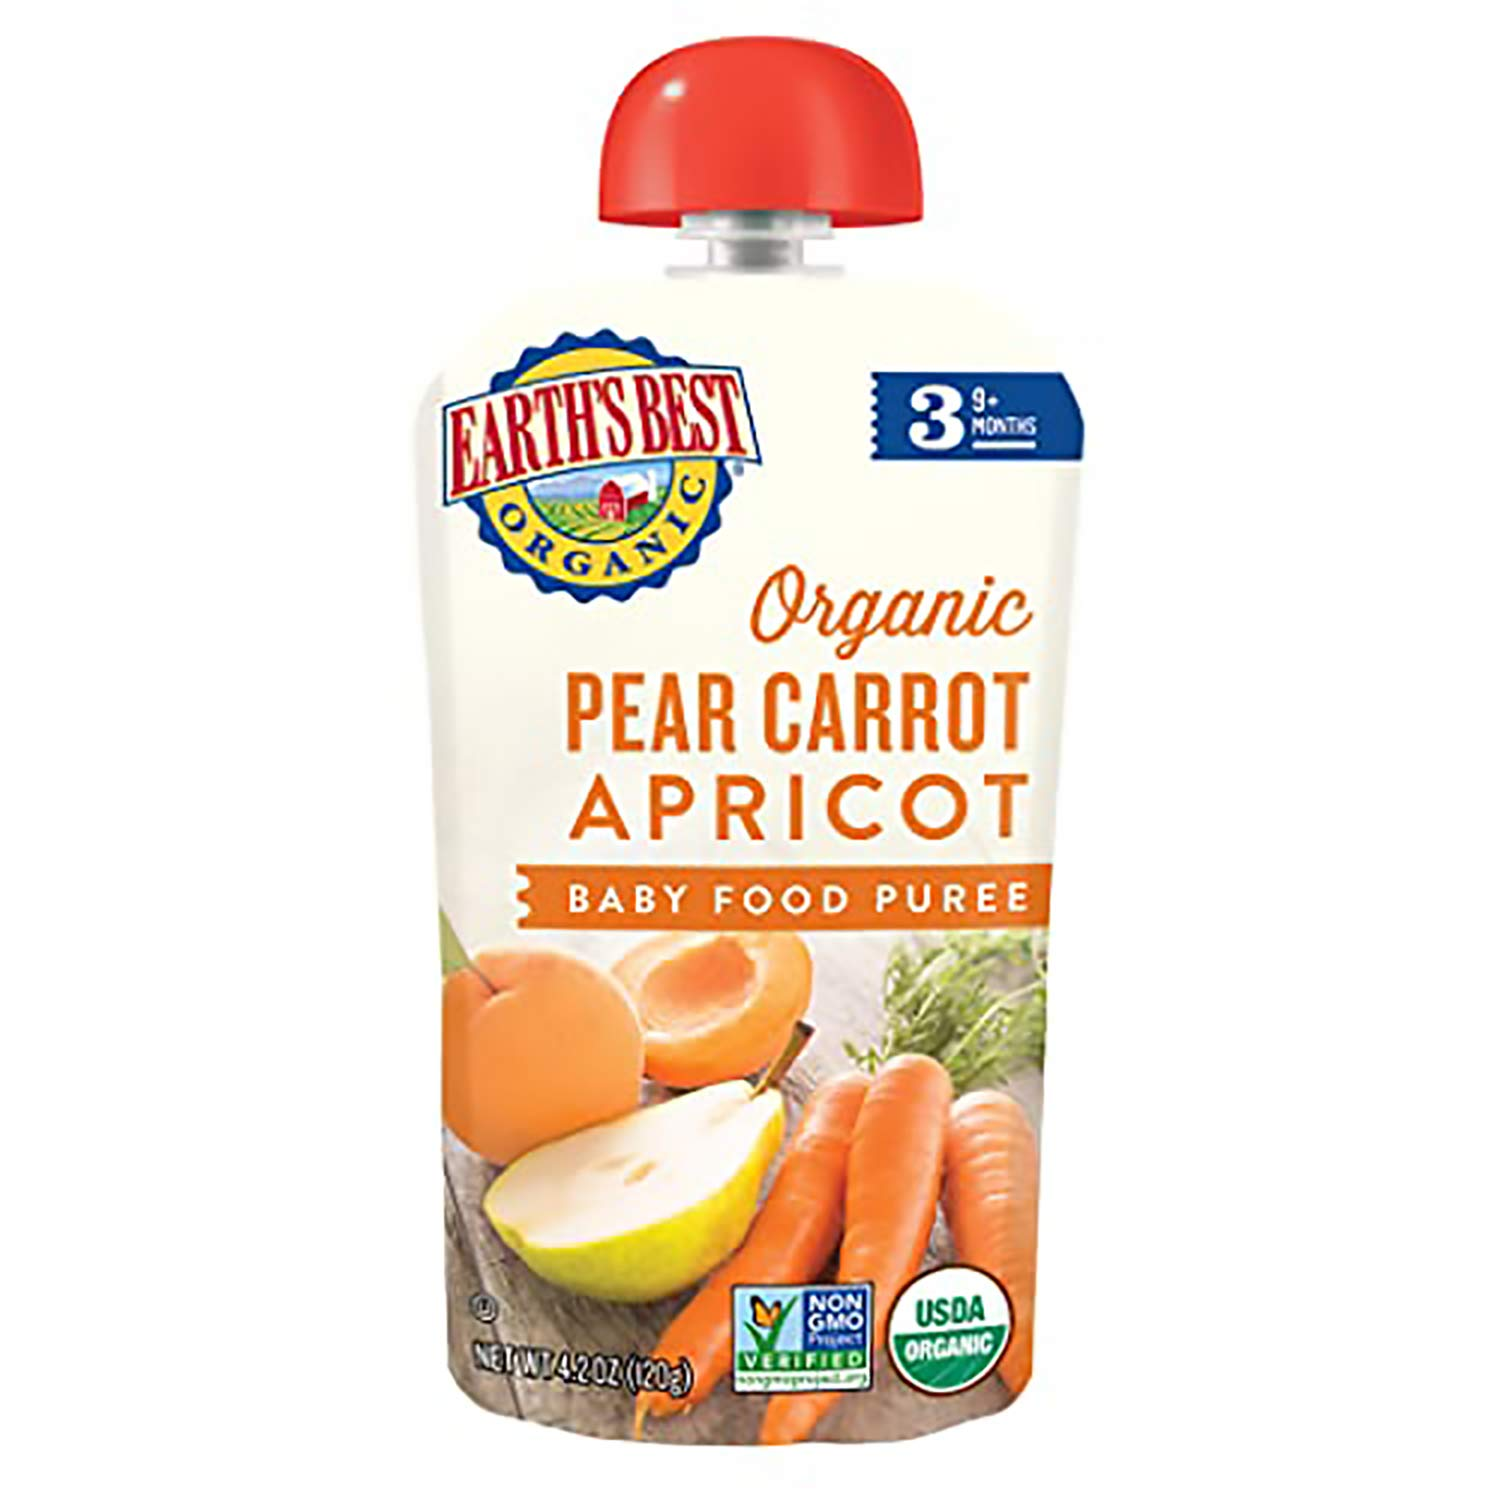 Earth's Best Organic Stage 3 Baby Food, Pear Carrot Apricot, 4.2 Oz (Pack of 12) (Packaging May Vary)